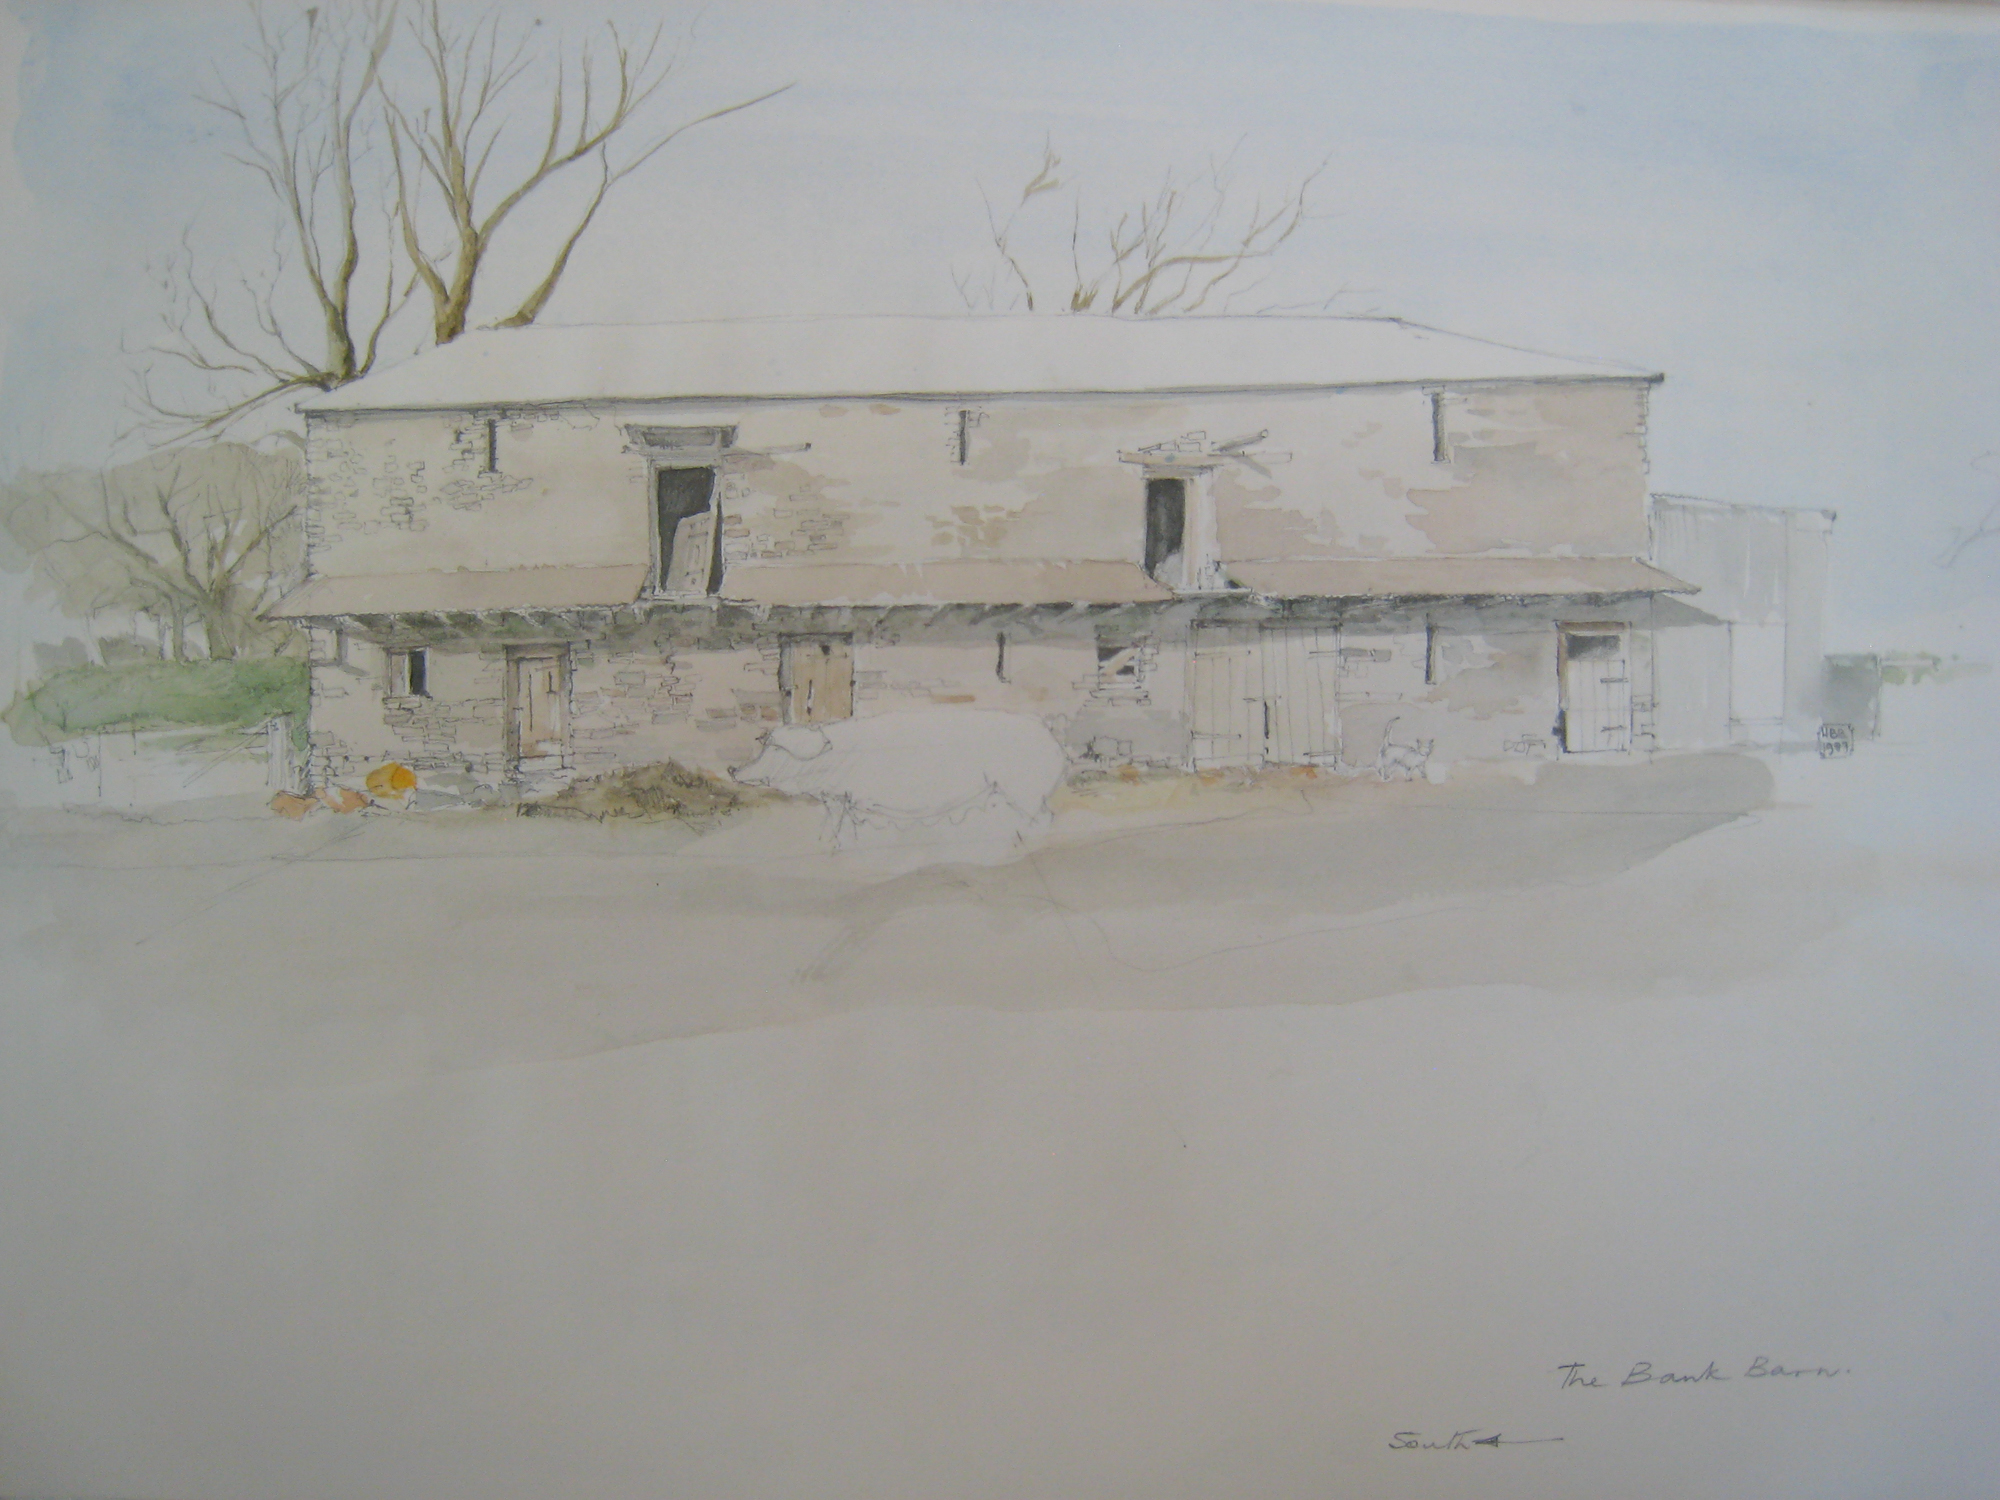 Shop: The Bank Barn painting with sow